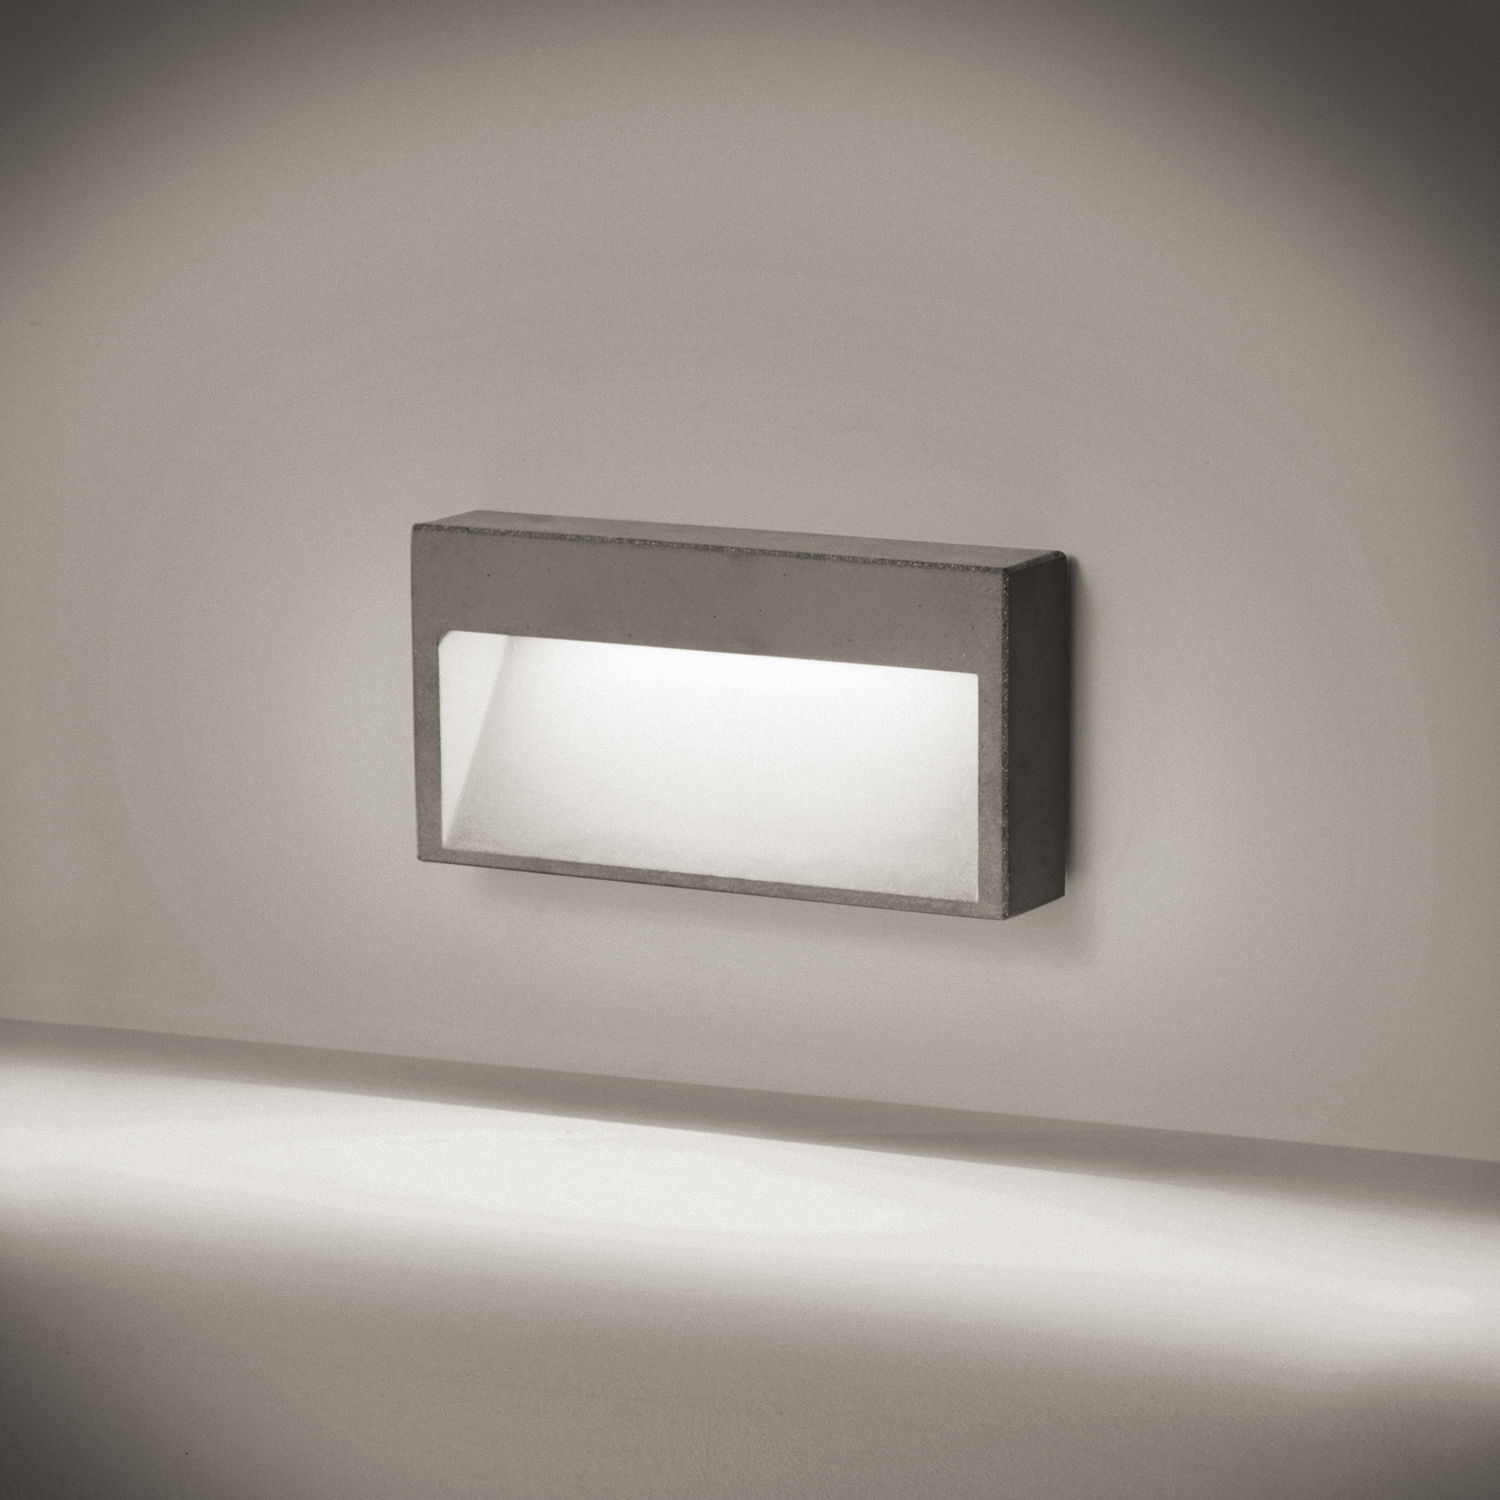 recessed wall light fixture concrete